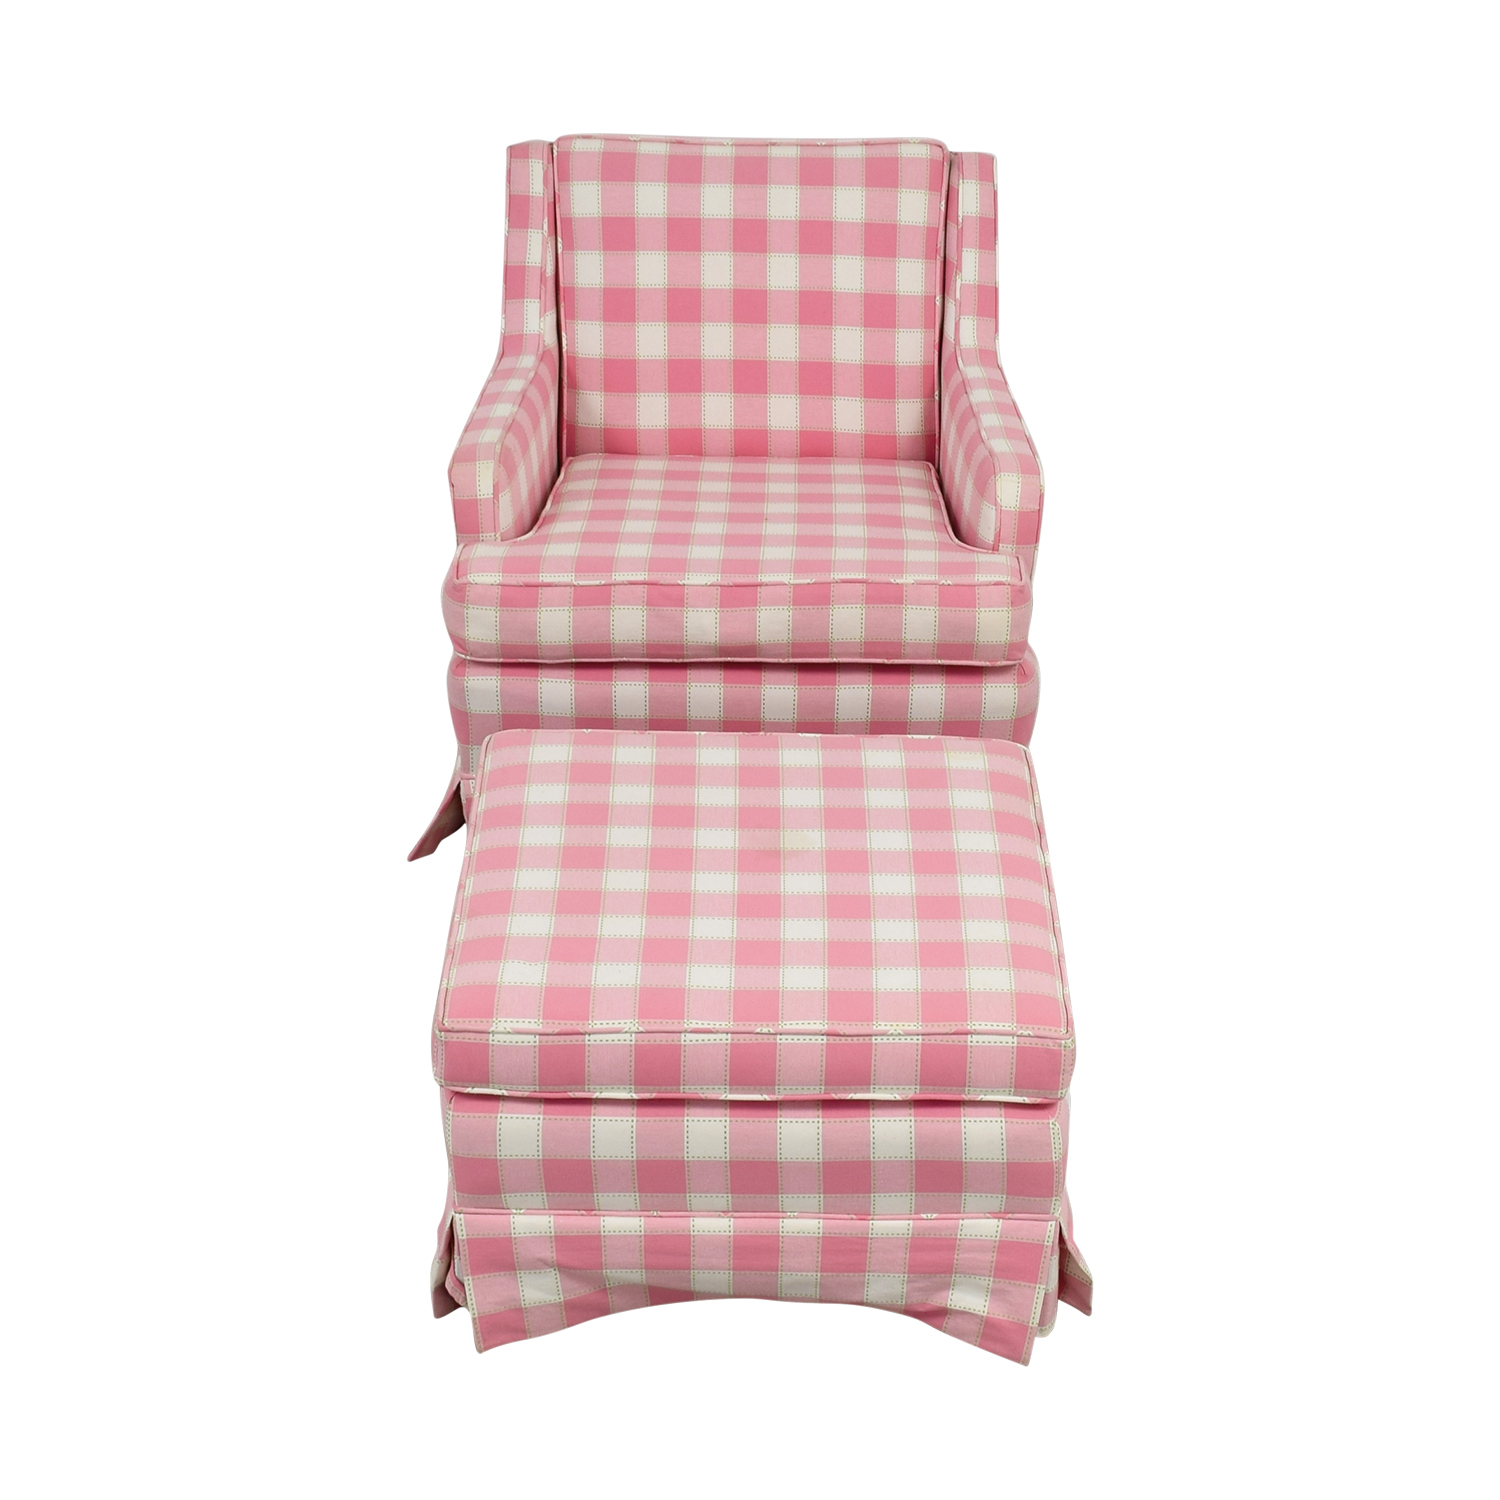 shop Pink and White Plaid Chair and Ottoman  Sofas